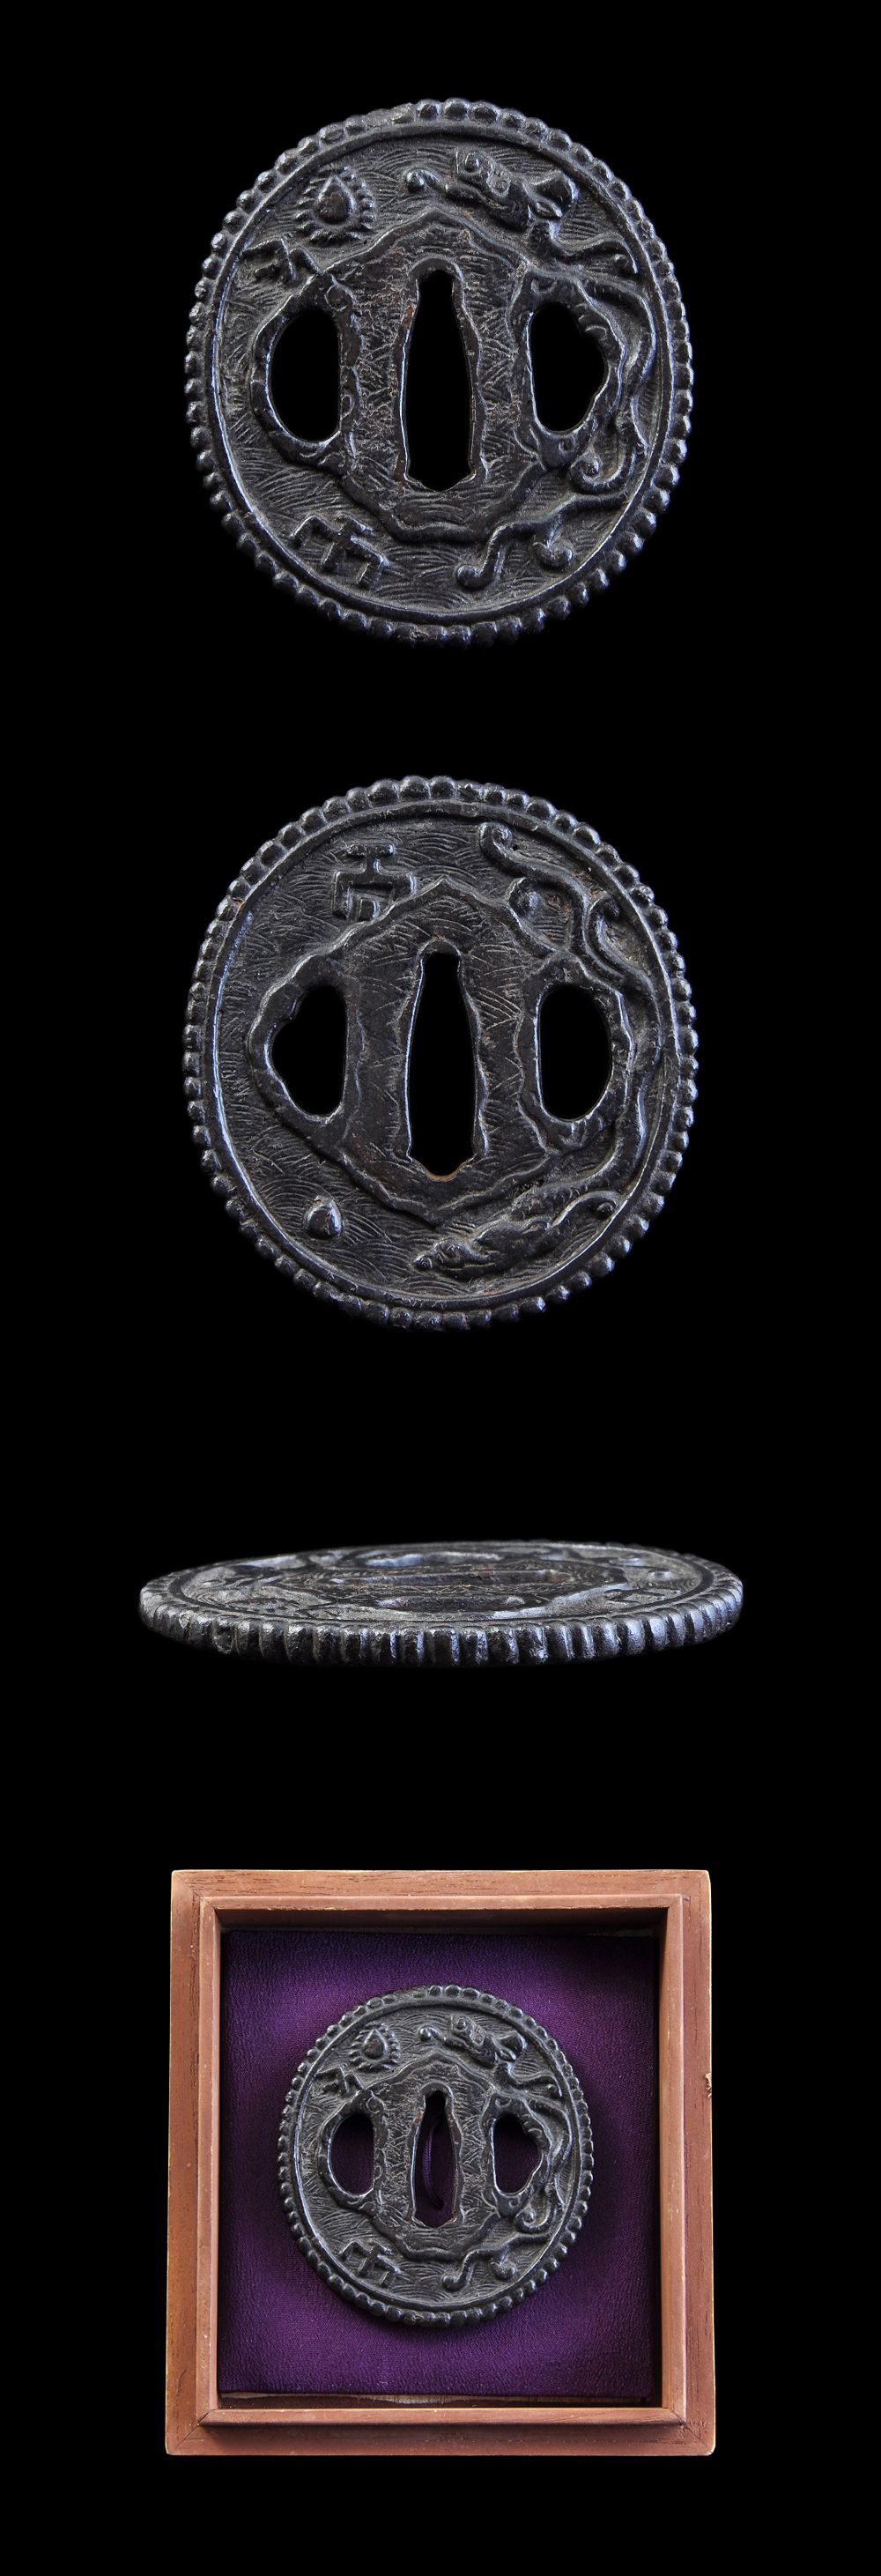 Ordering number : F12034 Tsuba: Mei (signature) : Mumei (Unsigned) Length : 6.75 cm x 6.23 cm ( 2.65 inches x 2.45 inches) Thickness of rim: 0.41 cm ( 0.16 inches) Jidai(era) : Edo period. Special ...